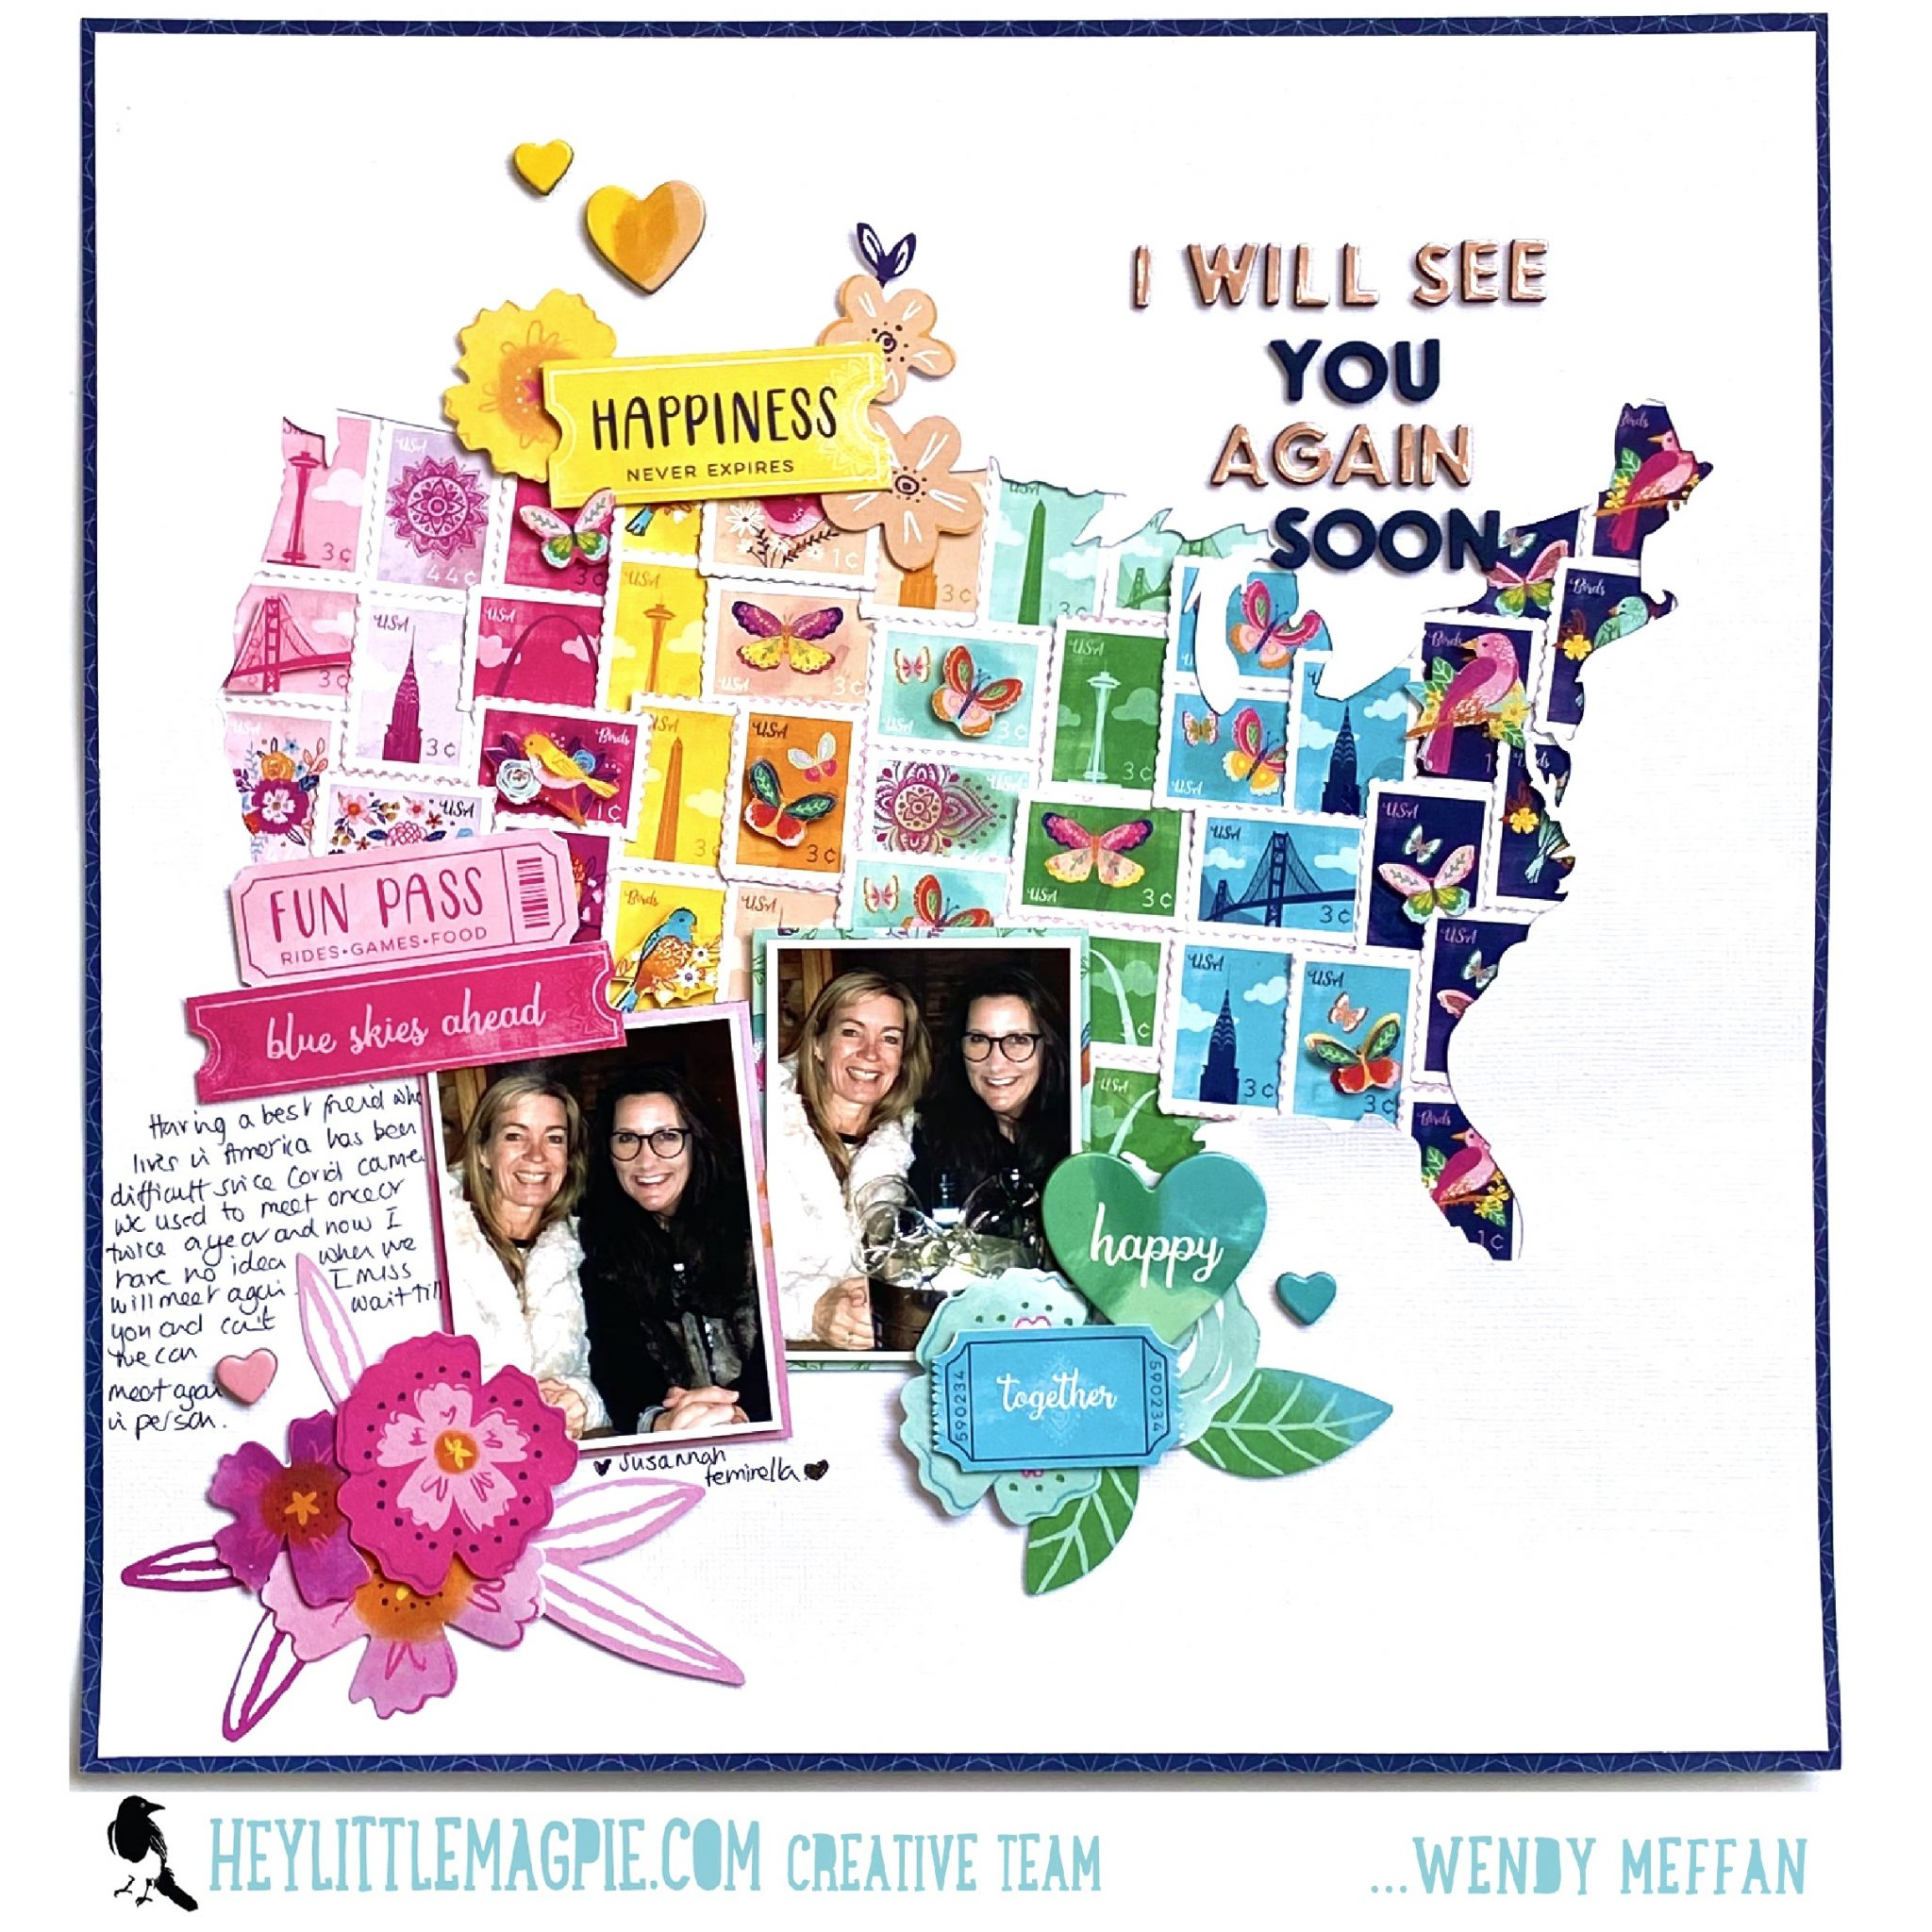 I WILL SEE YOU AGAIN – PAIGE EVANS – GO THE SCENIC ROUTE – WENDY MEFFAN